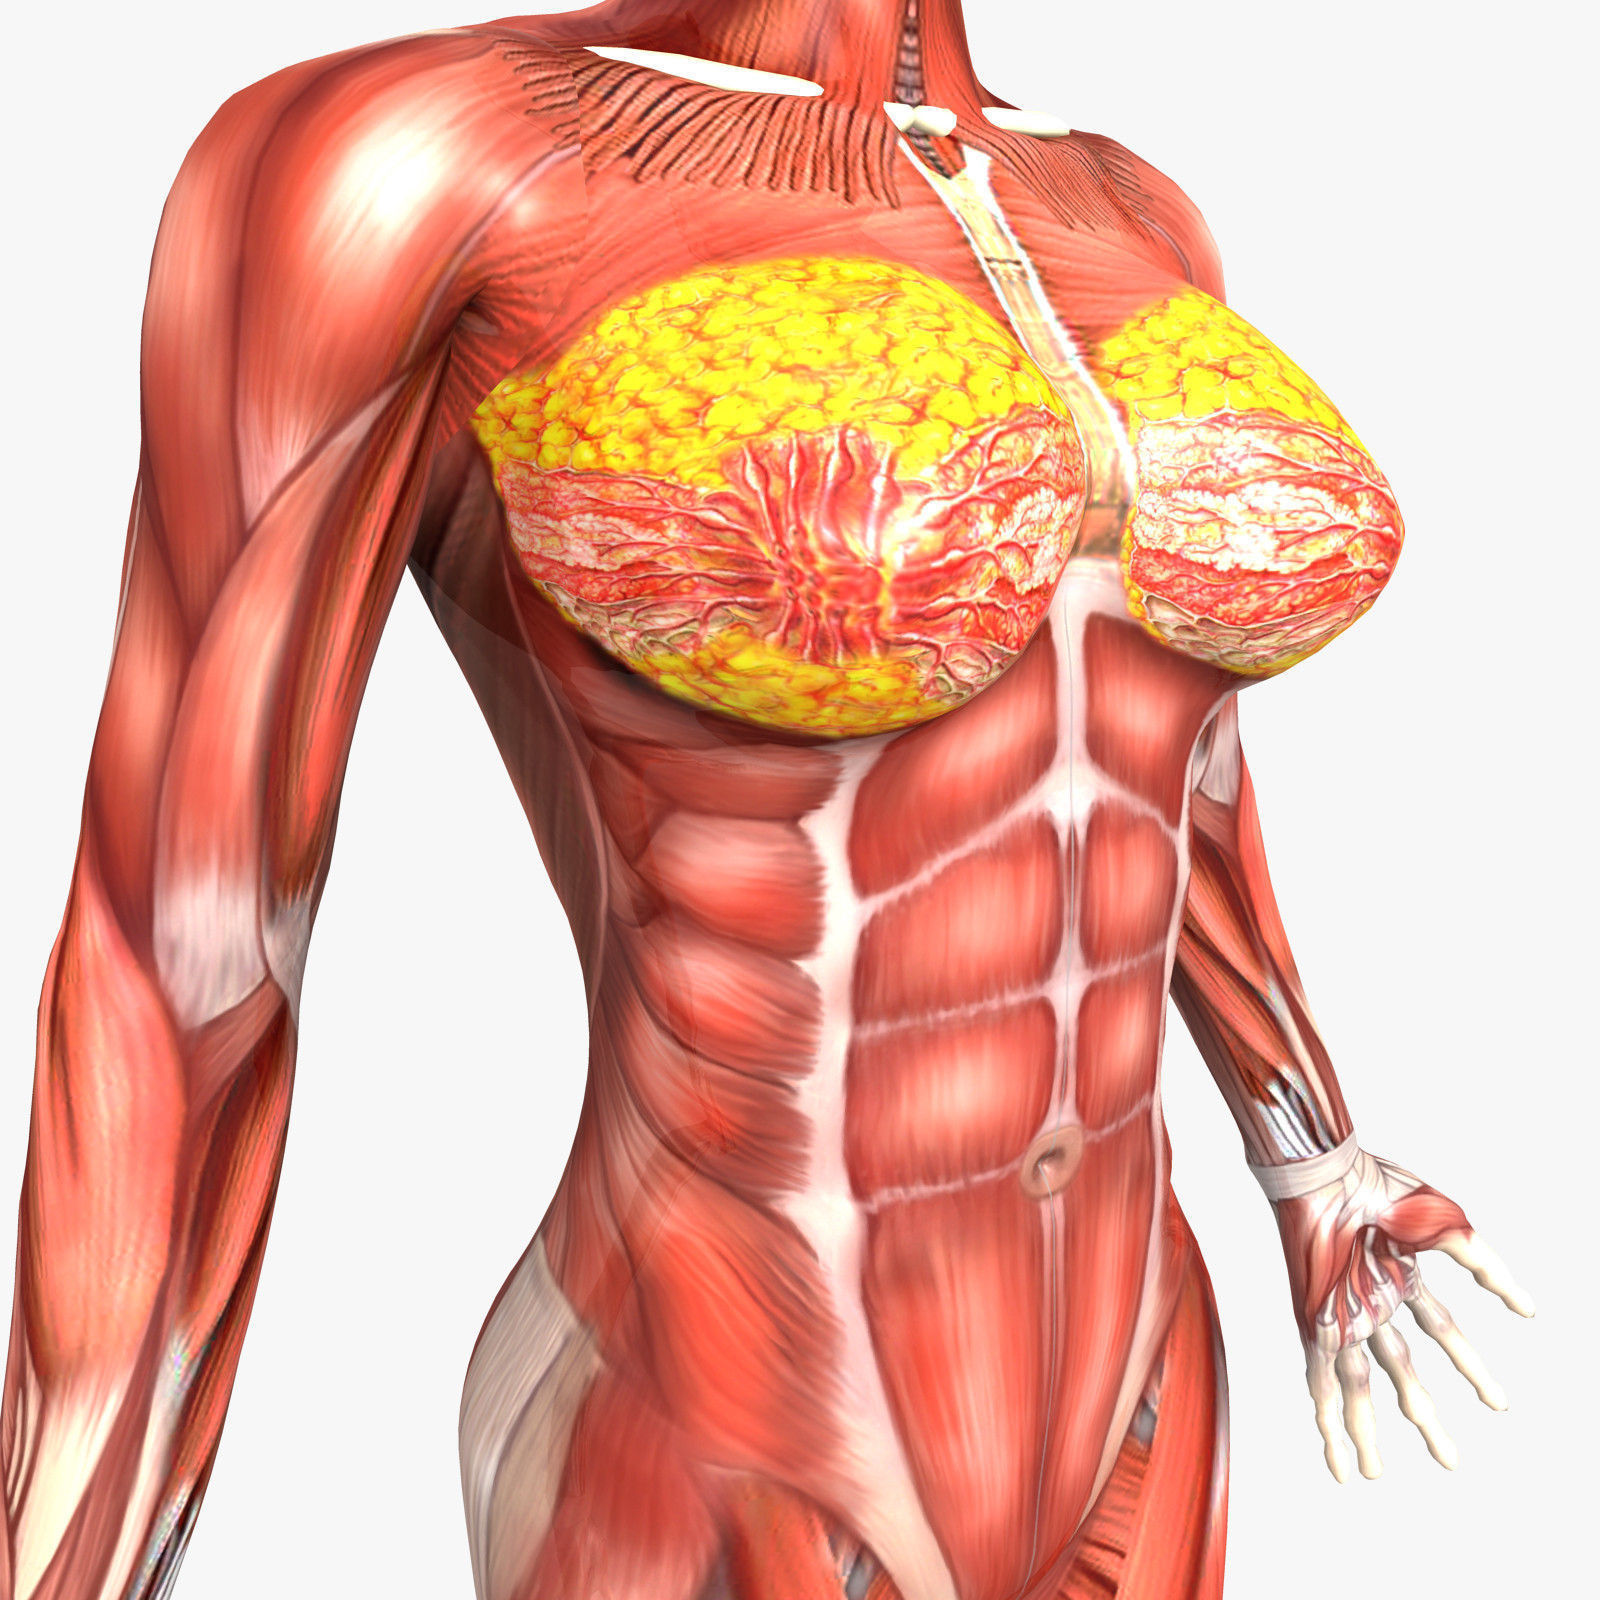 Female muscles anatomy